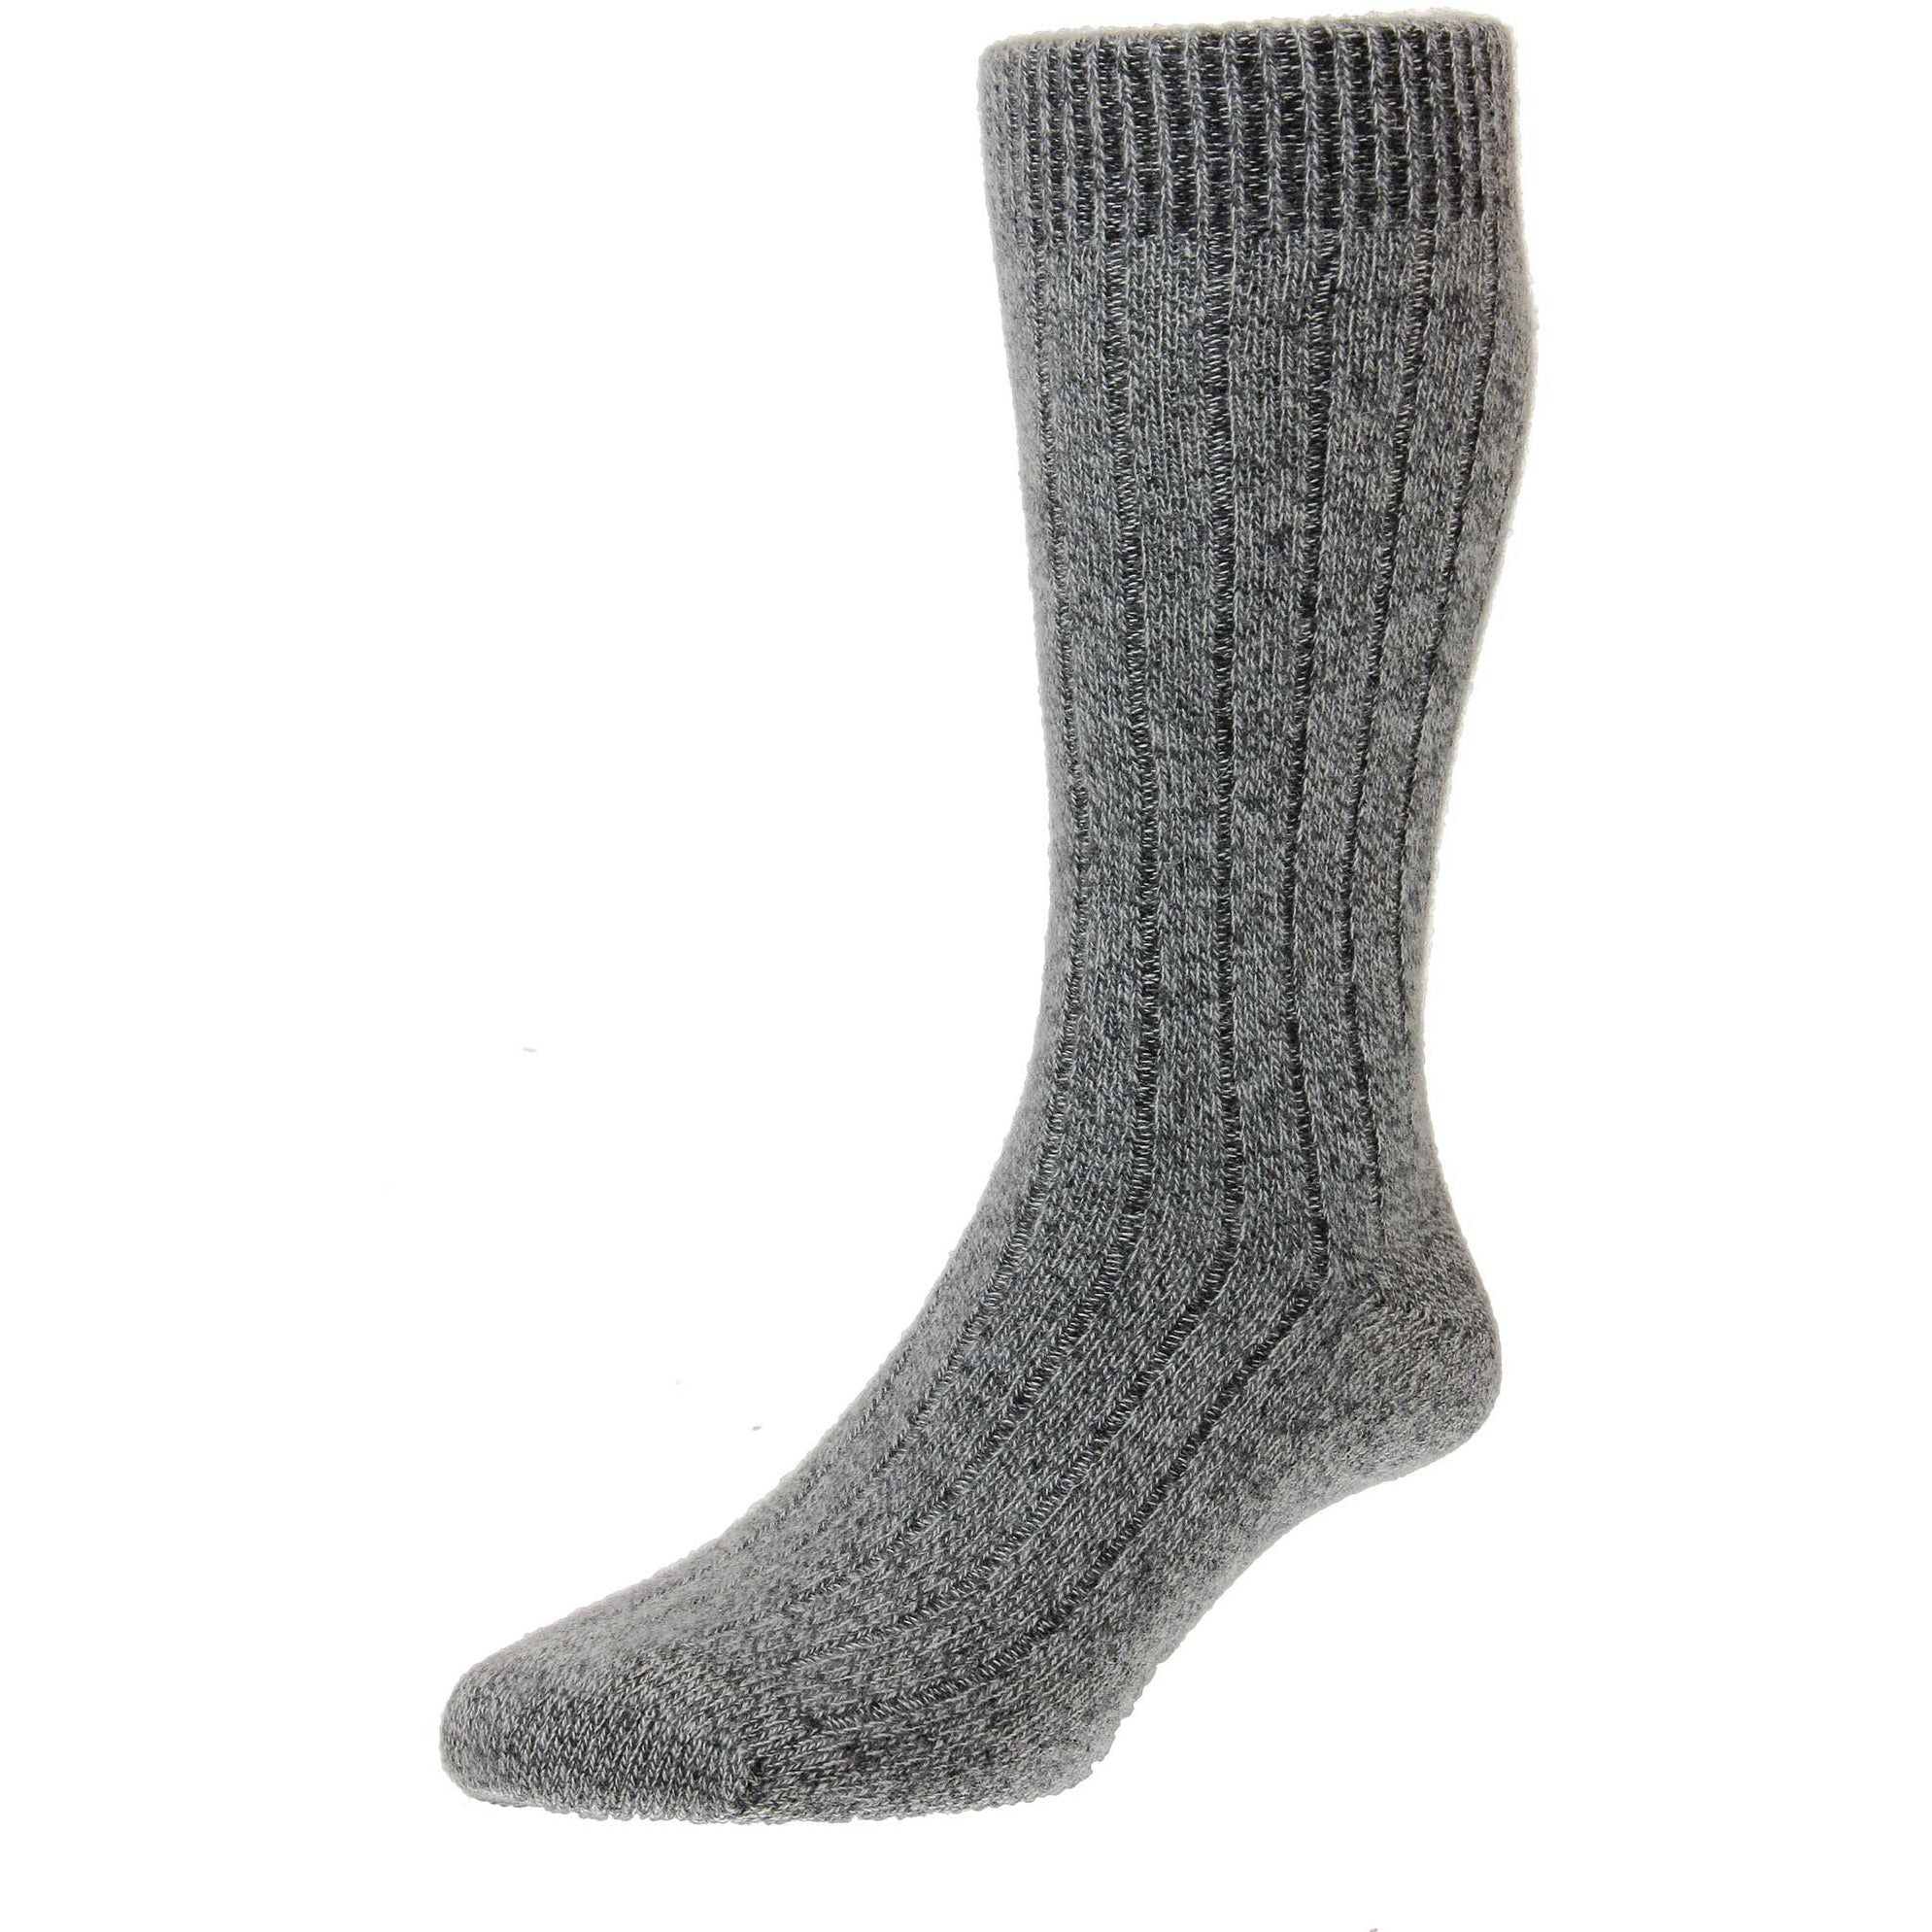 Waddington 5x1 Rib Cashmere Dress Socks